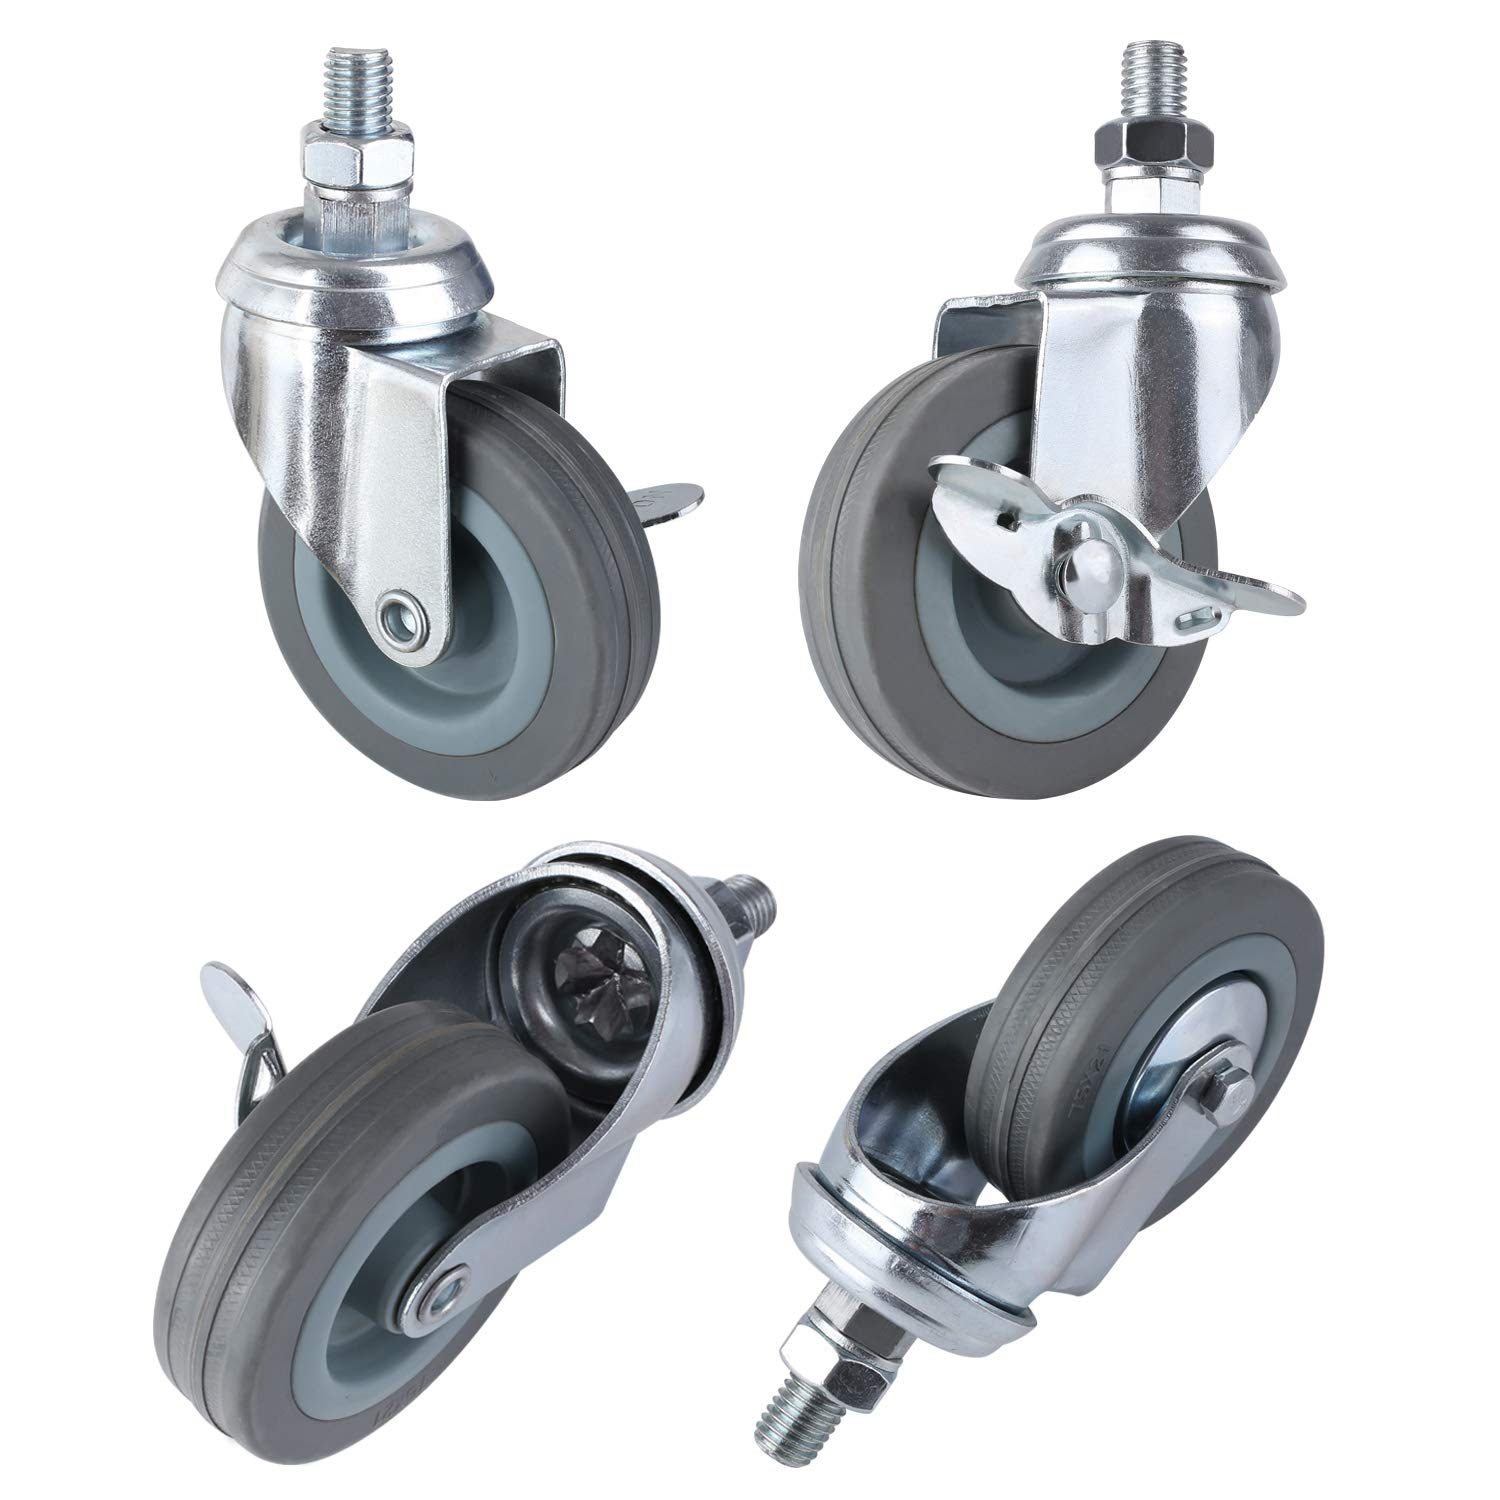 MVPOWER 3'' Swivel Caster Wheels, 4 Pack Threaded Stem Mount Dust Cover Rubber Heavy Duty Casters Replacement for Carts, Furniture, Dolly,Trolley, Workbench